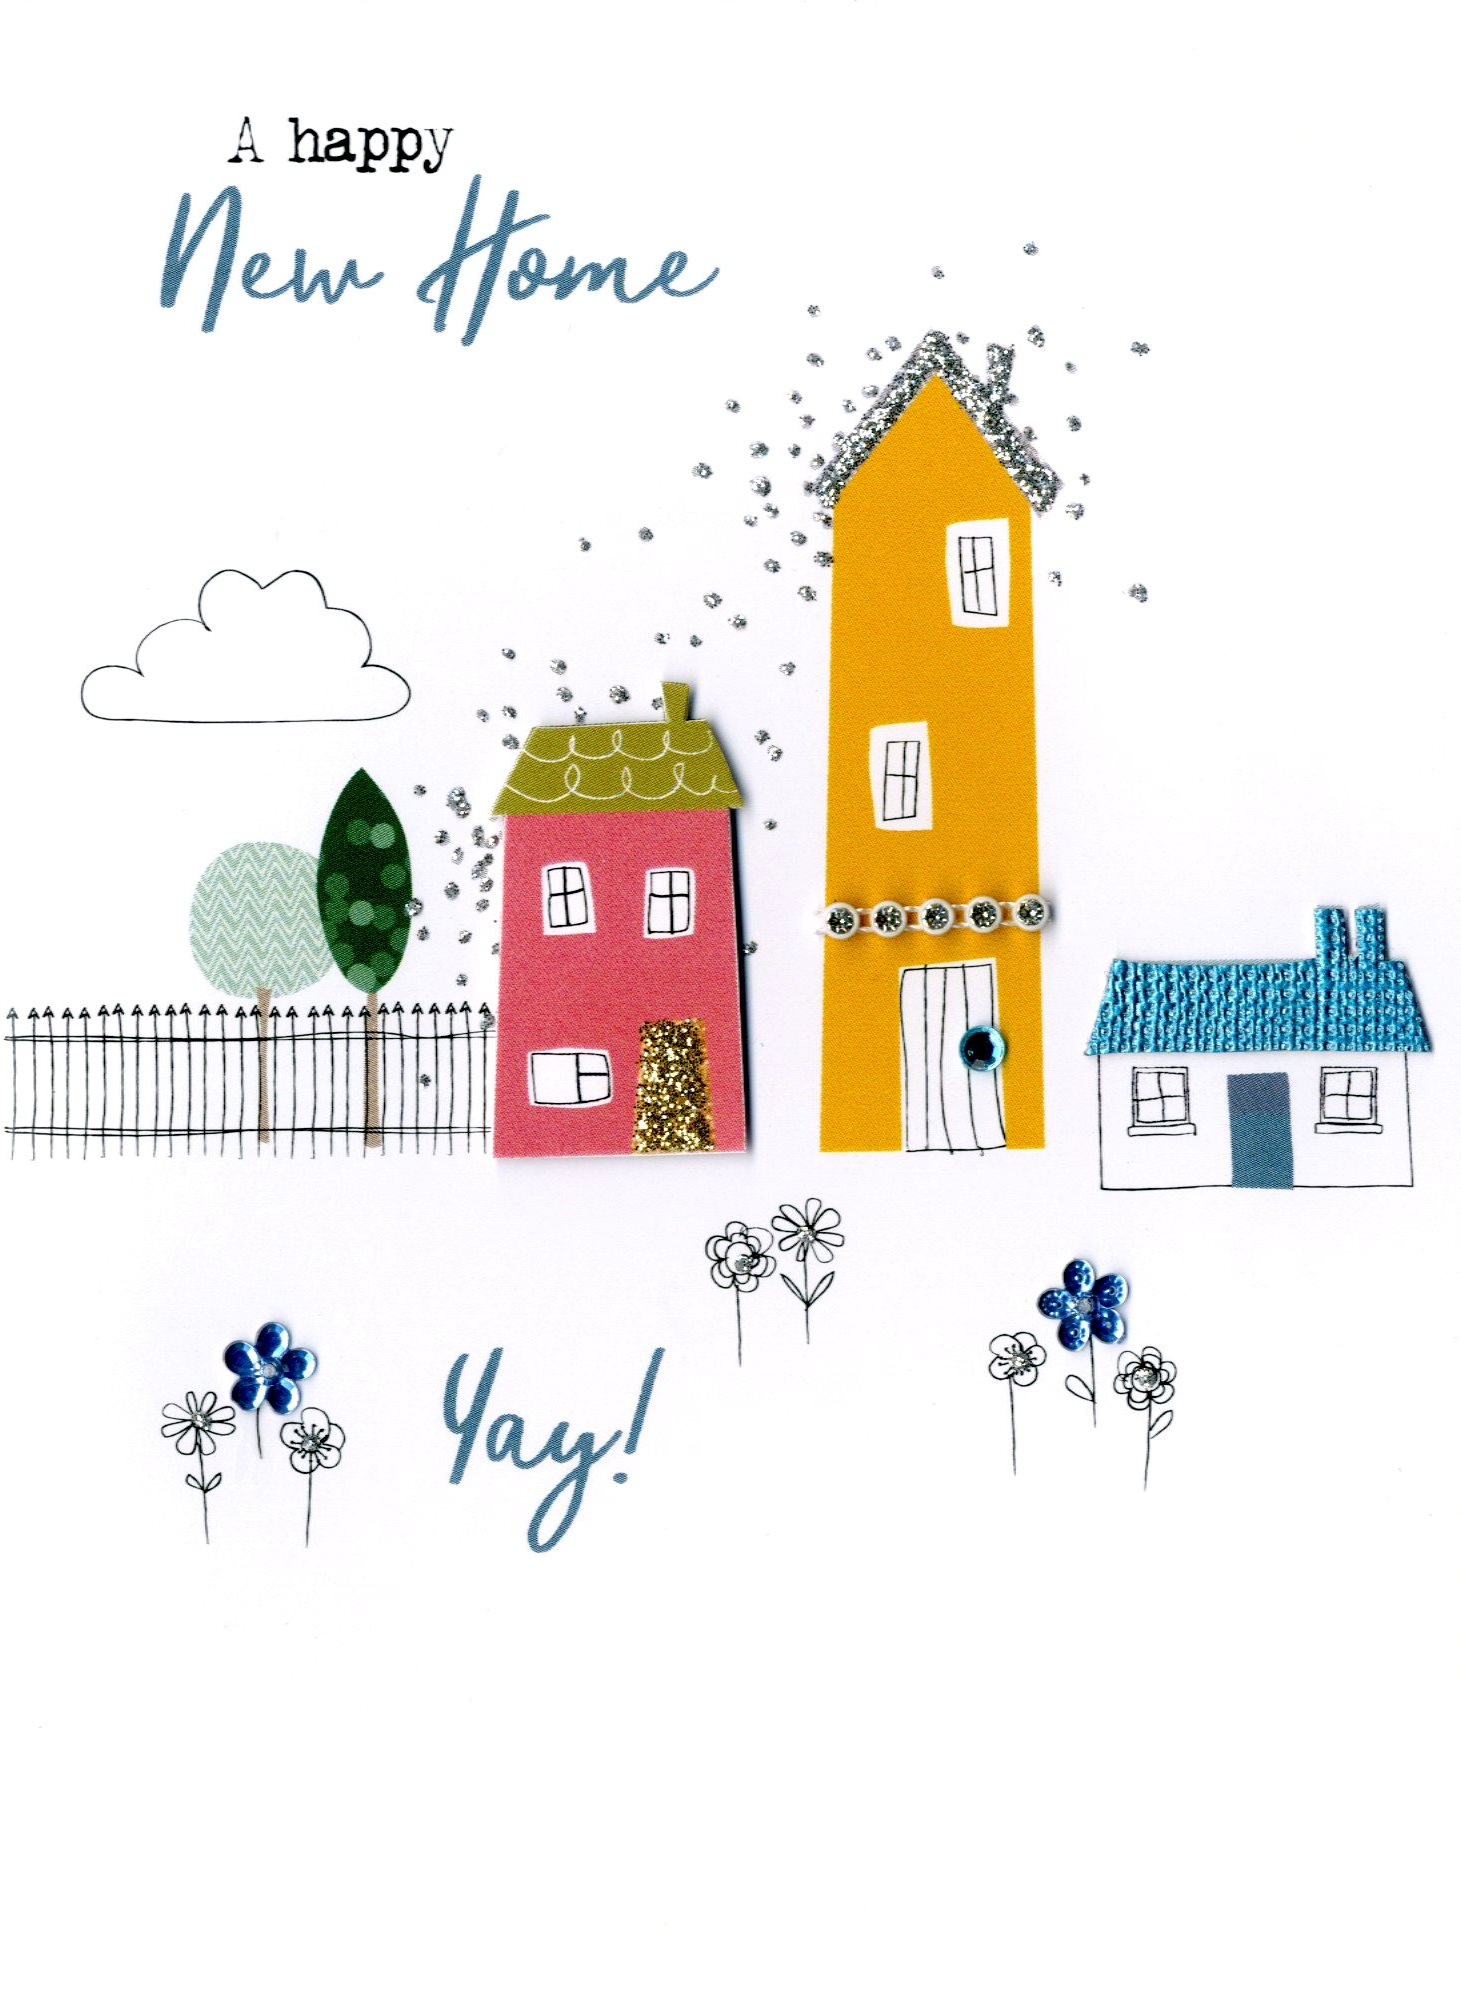 Happy New Home Yay Irresistible Greeting Card Cards Love Kates